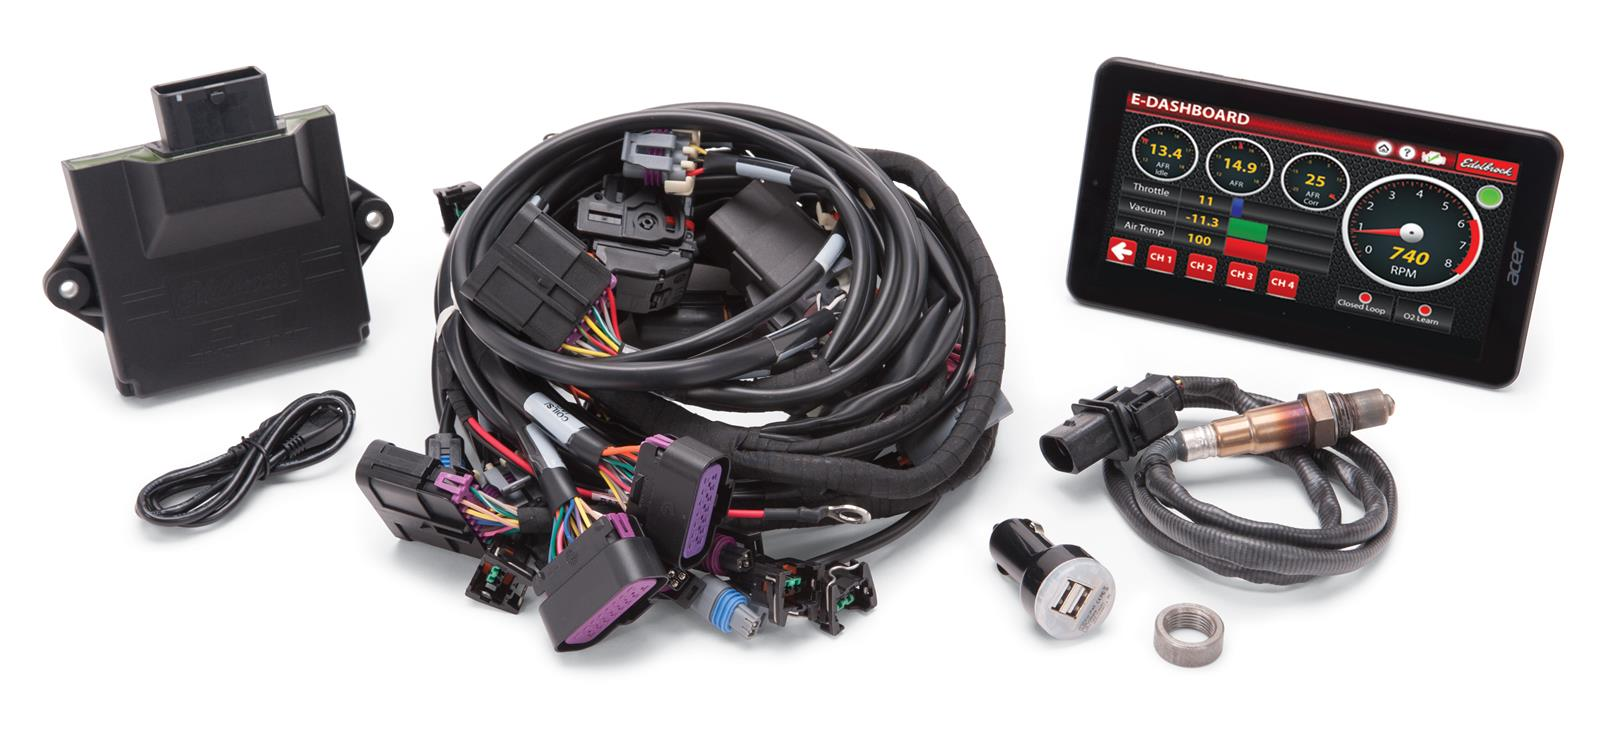 edelbrock pro flo 4 ls self learning engine management systems 35711 57 chevy belair wire harness complete